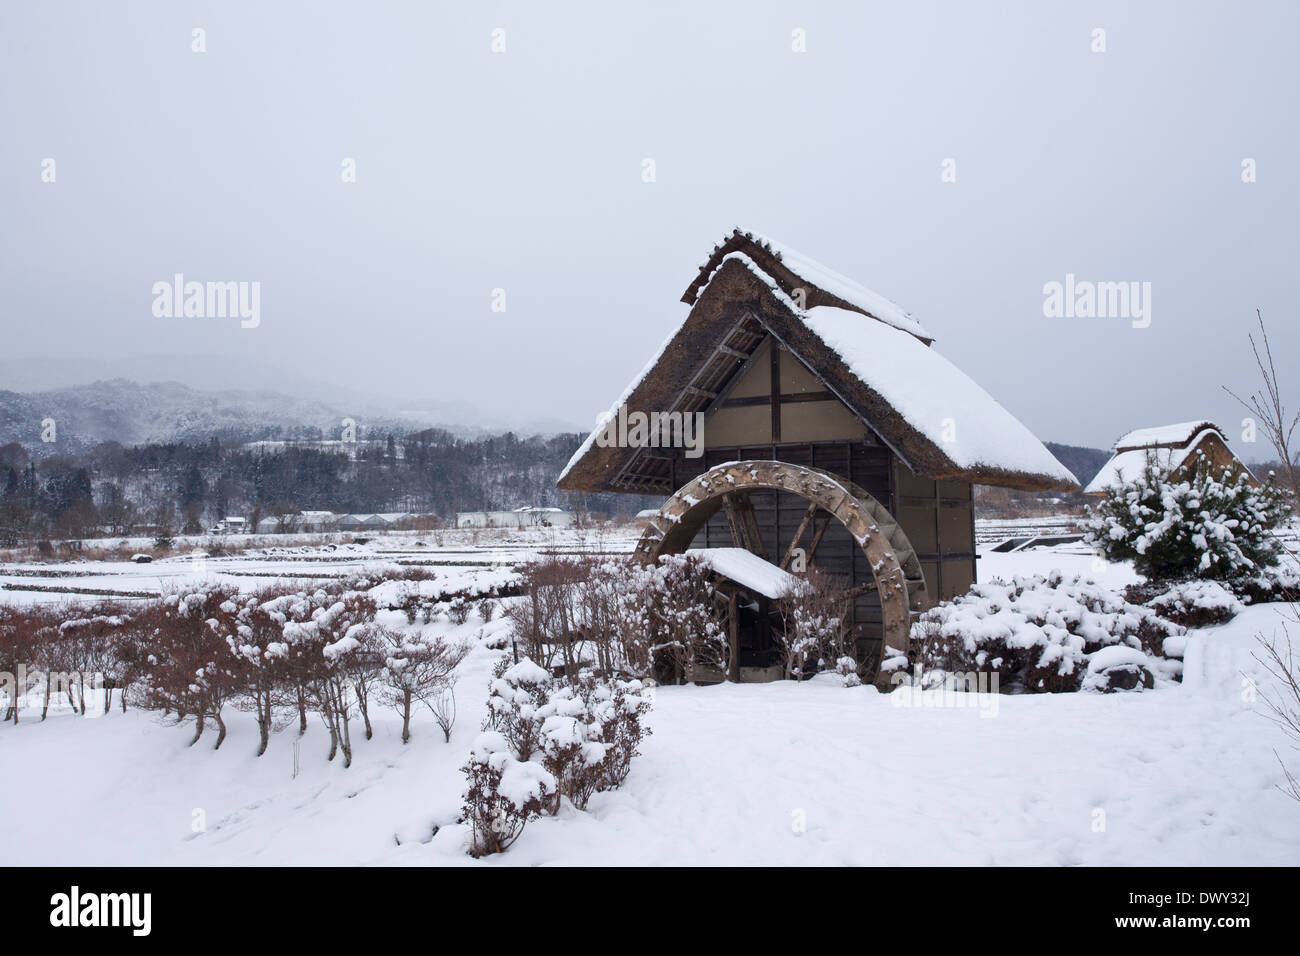 Water wheel house in winter - Stock Image